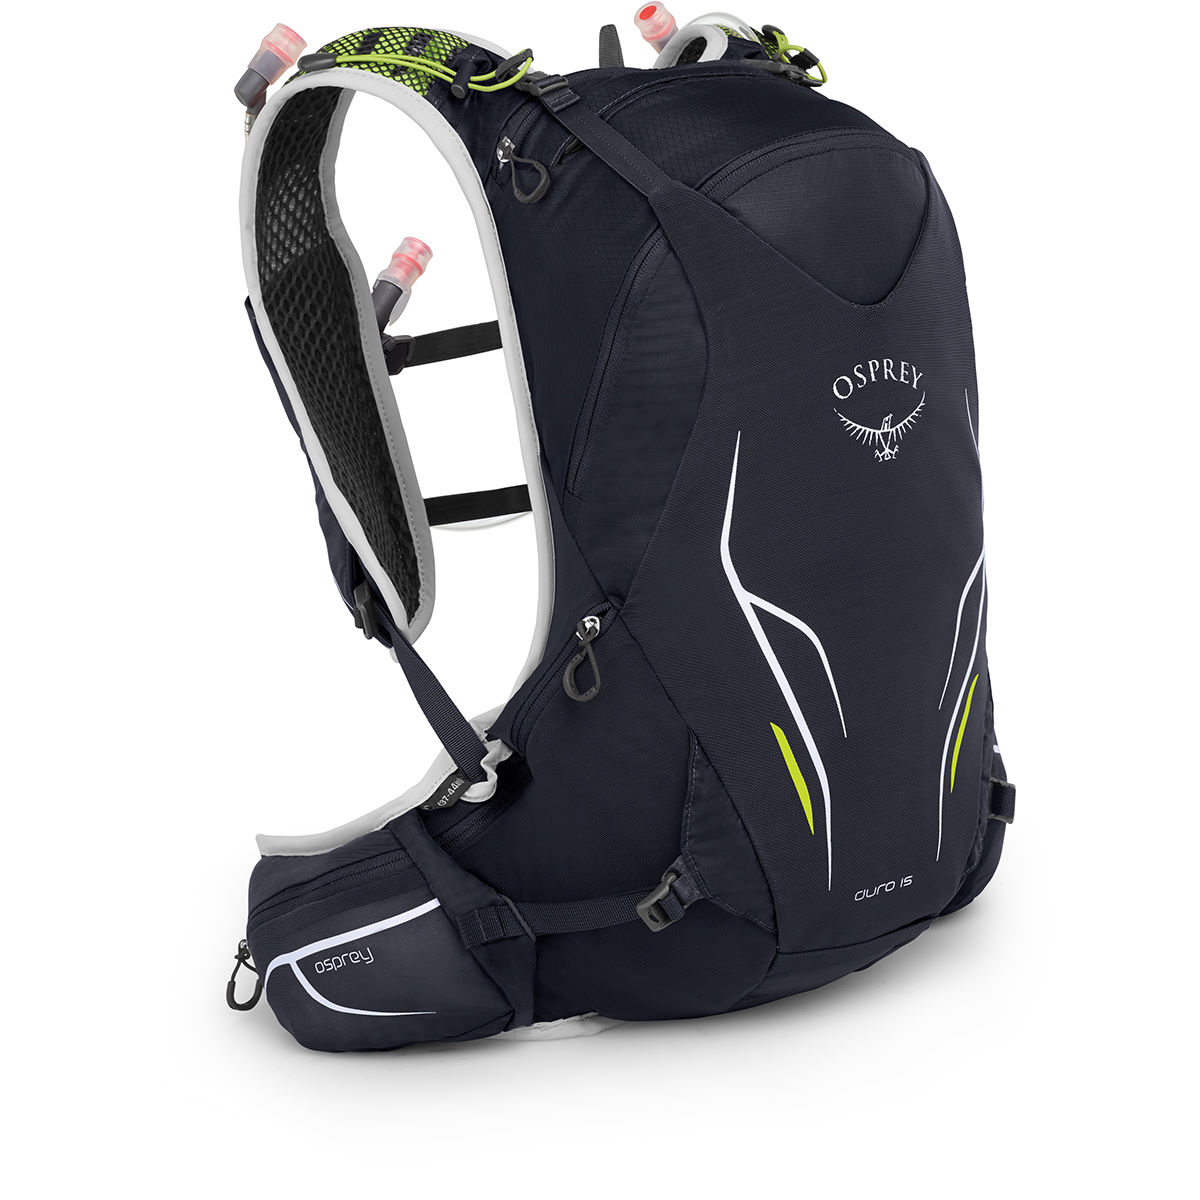 Osprey Osprey Duro 15 Hydration Pack   Hydration Packs